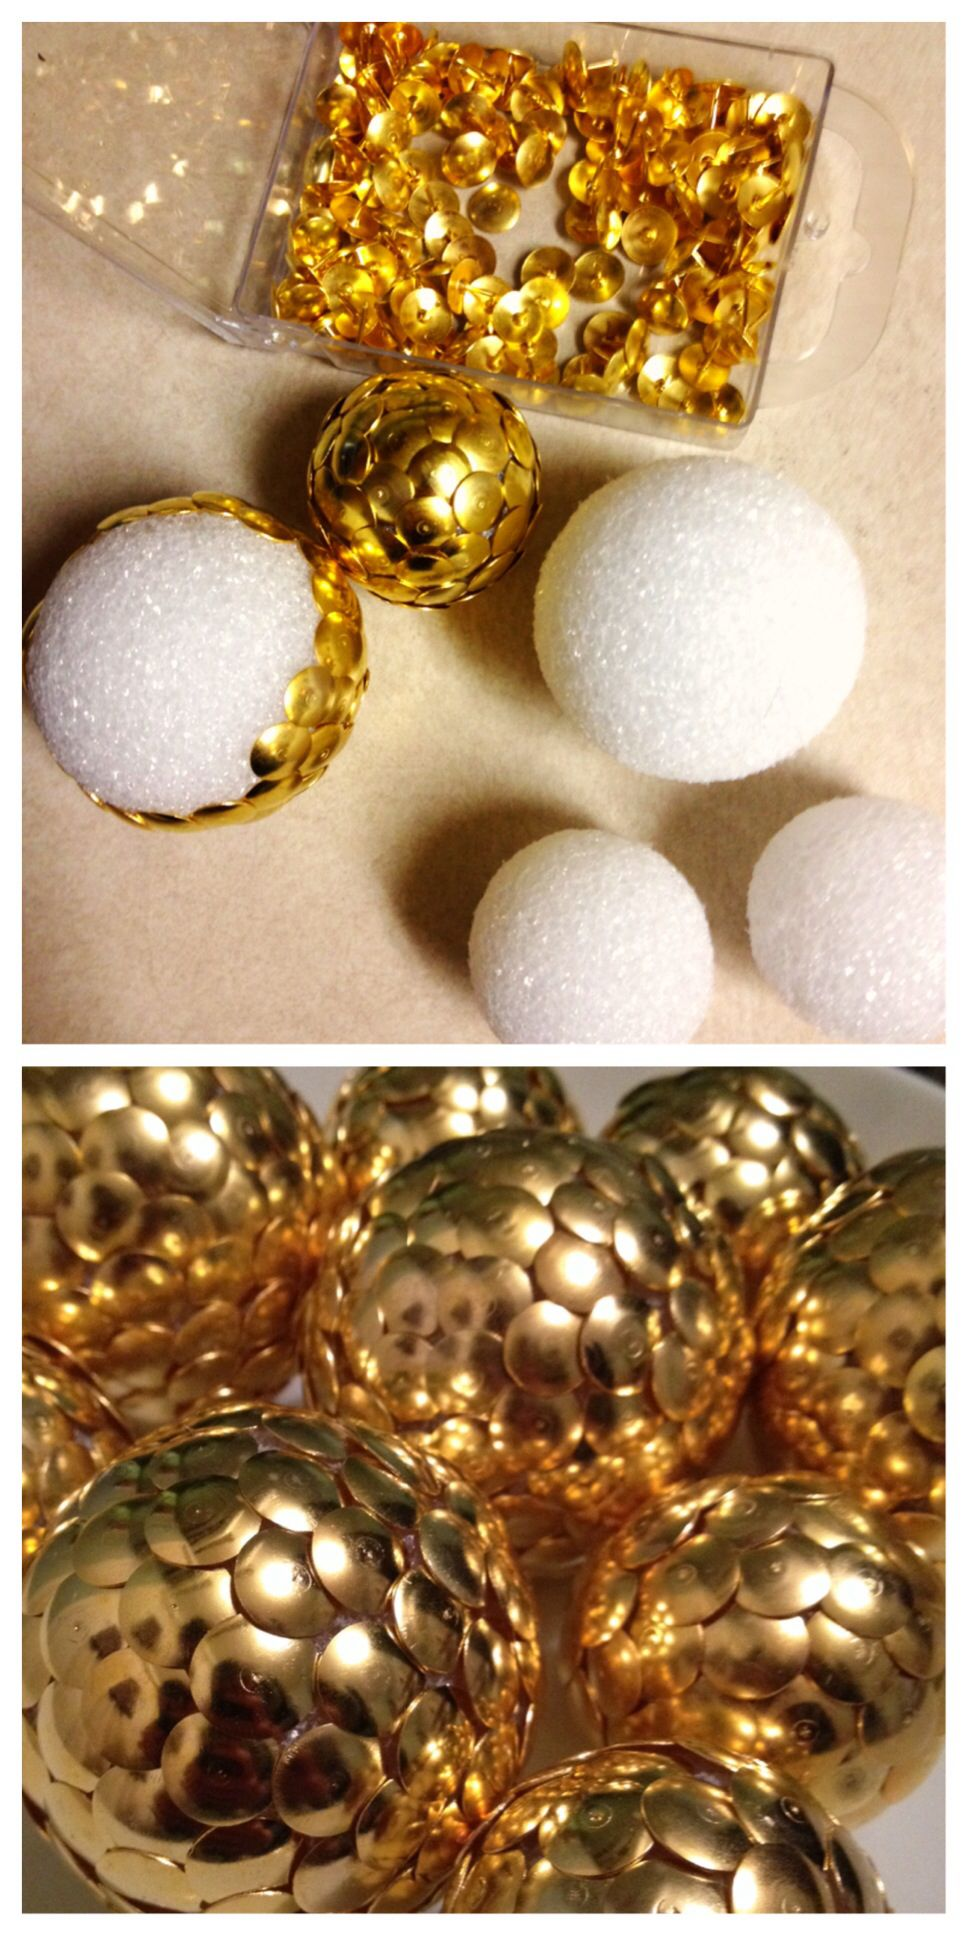 dollar store gold thumbtacks + styrofoam balls = awesomeness These would be  great painted with pretty